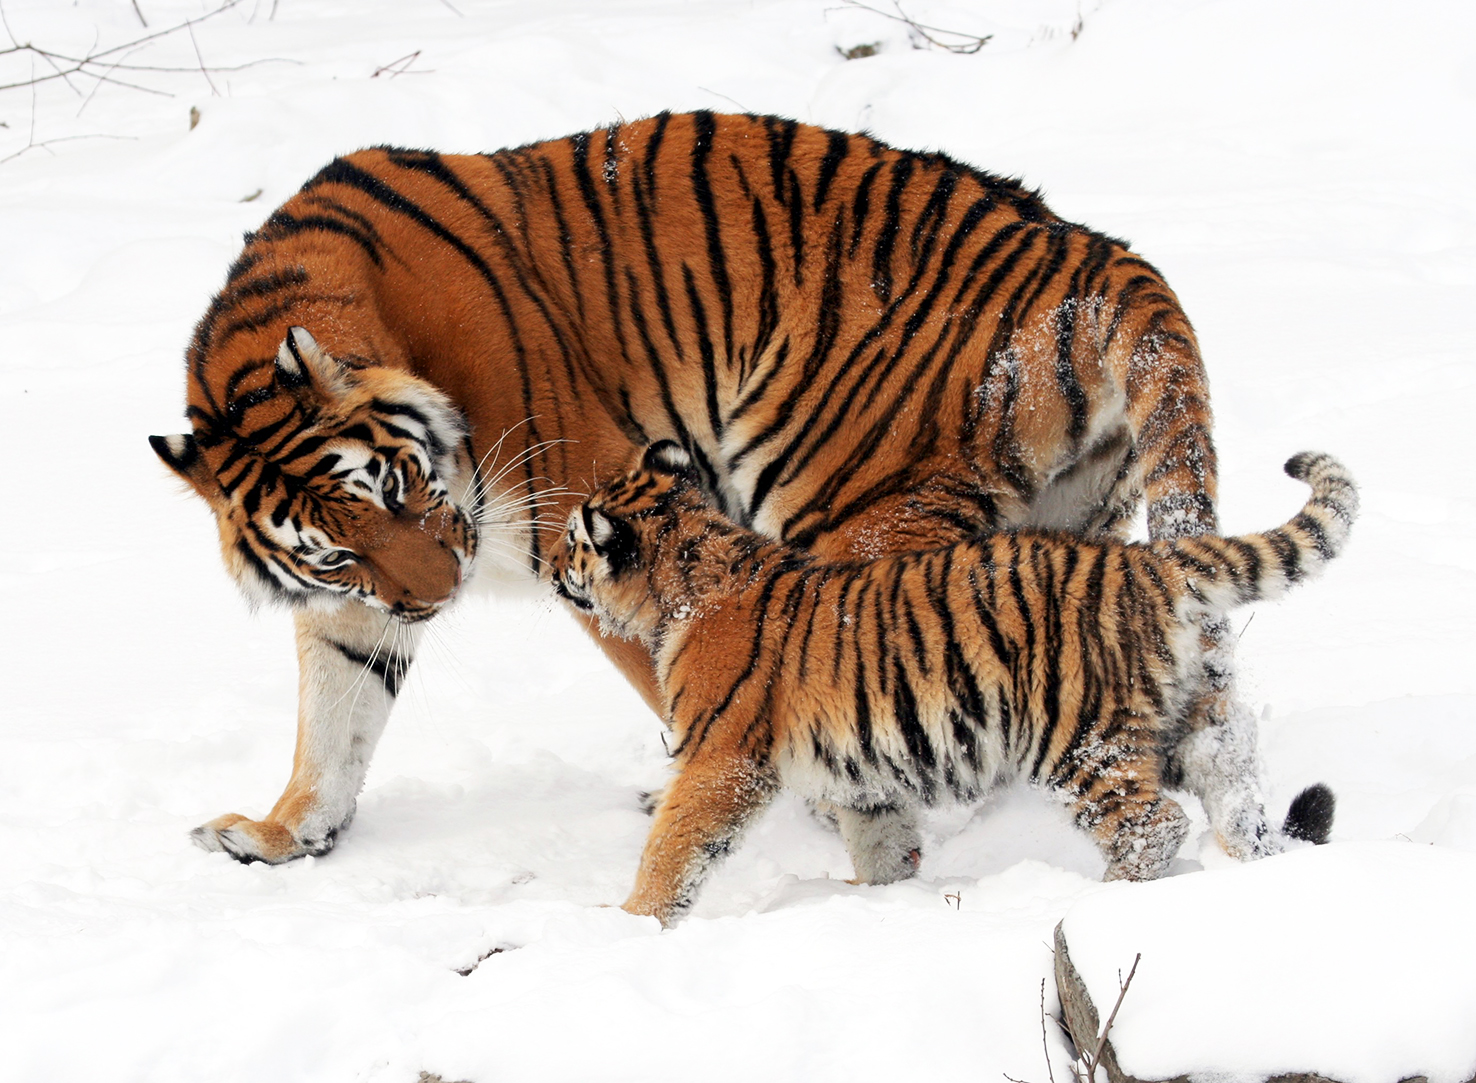 Sibririan tigress with her cub